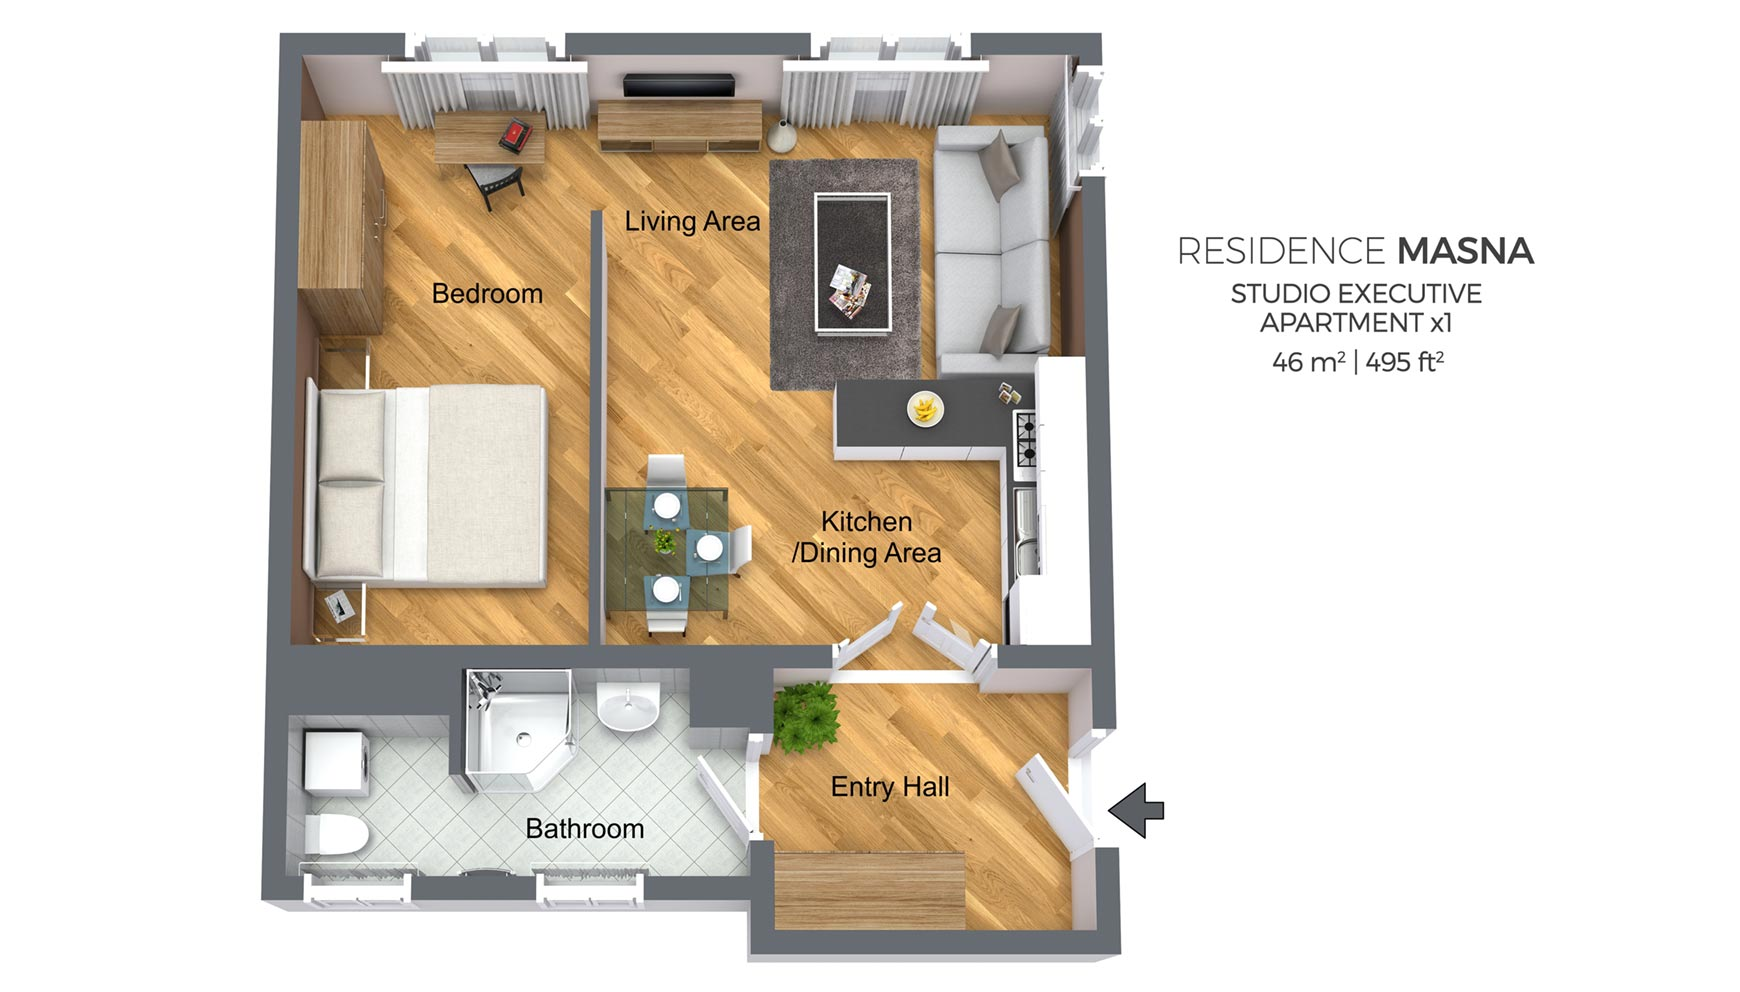 Studio Apartment Type 1 | Residence Masna